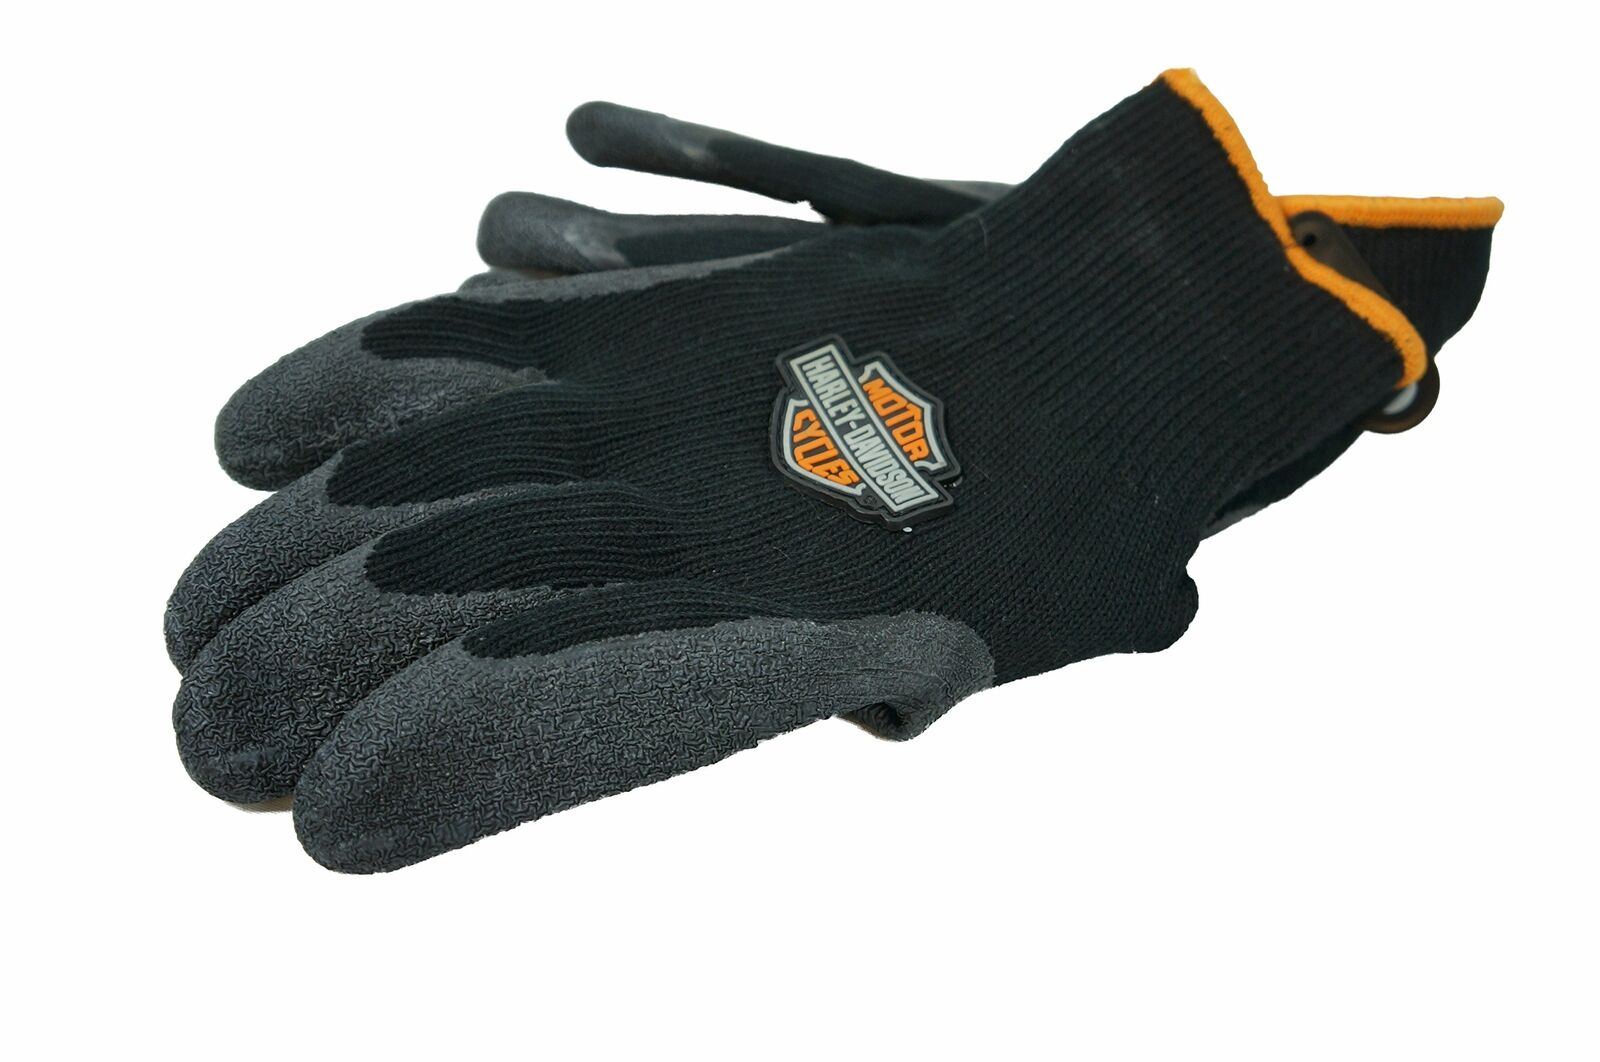 Harley-Davidson Hand Protection Rubber Dipped Knit Black Gloves Size Medium